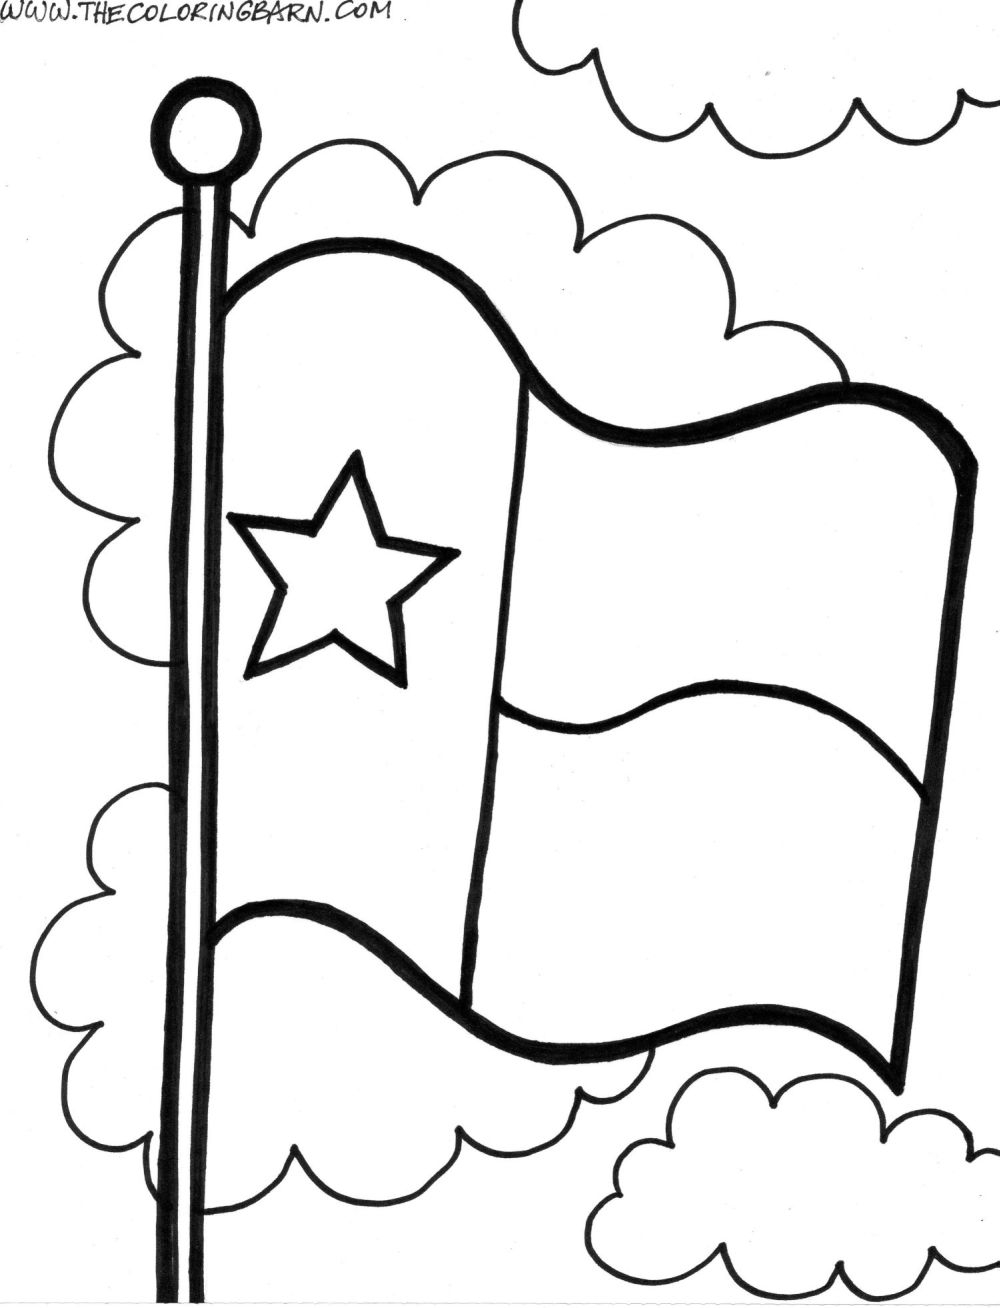 Texas State Seal Coloring Page Printable – Free Coloring Sheets